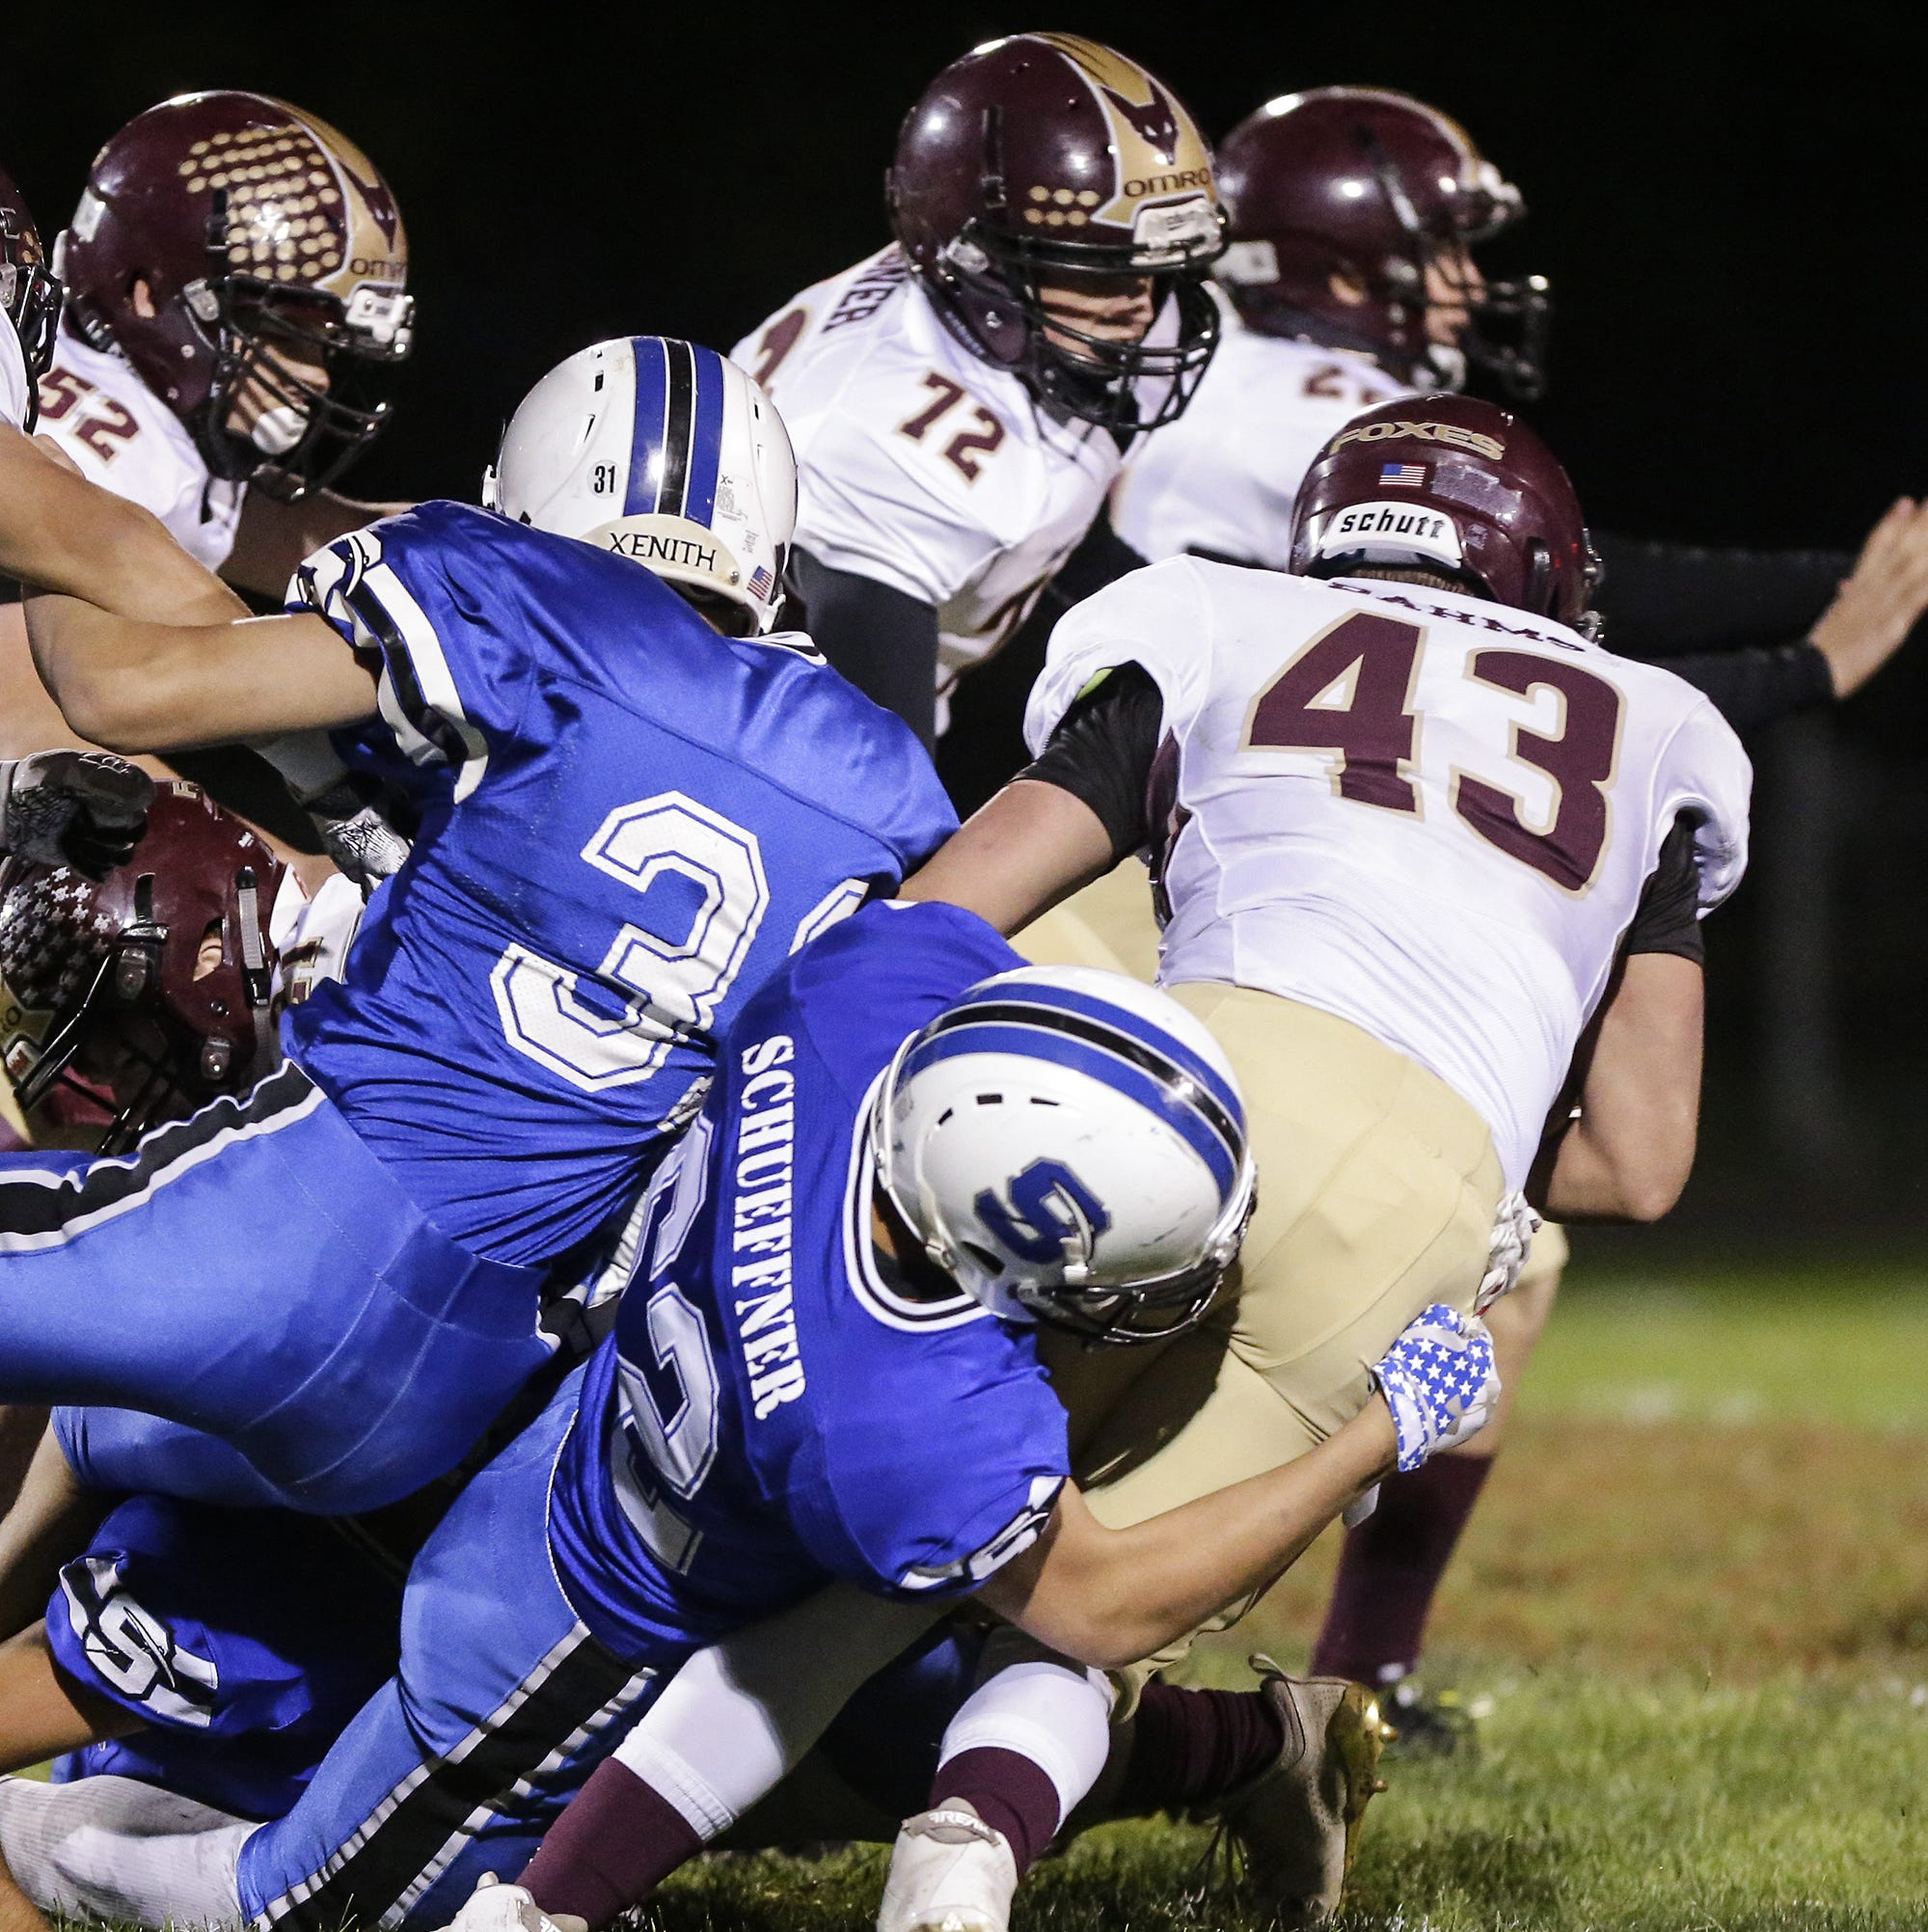 Fond du Lac St. Mary's Springs Academy football player killed in duck hunting accident